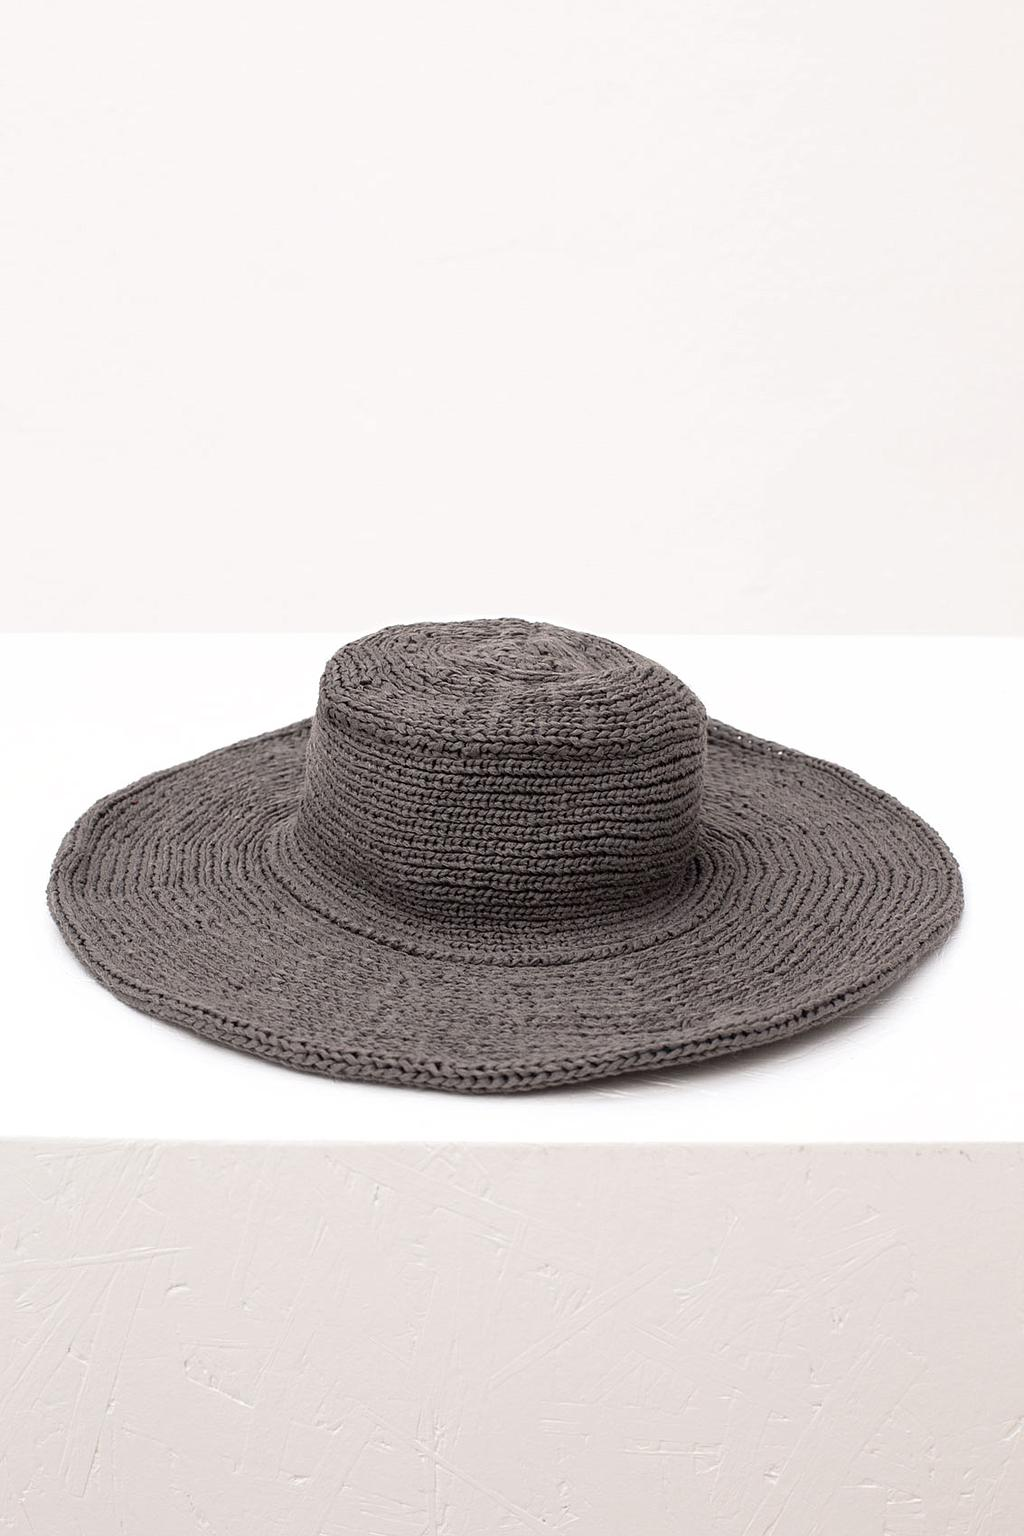 STONE GREY KNIT BUCKET